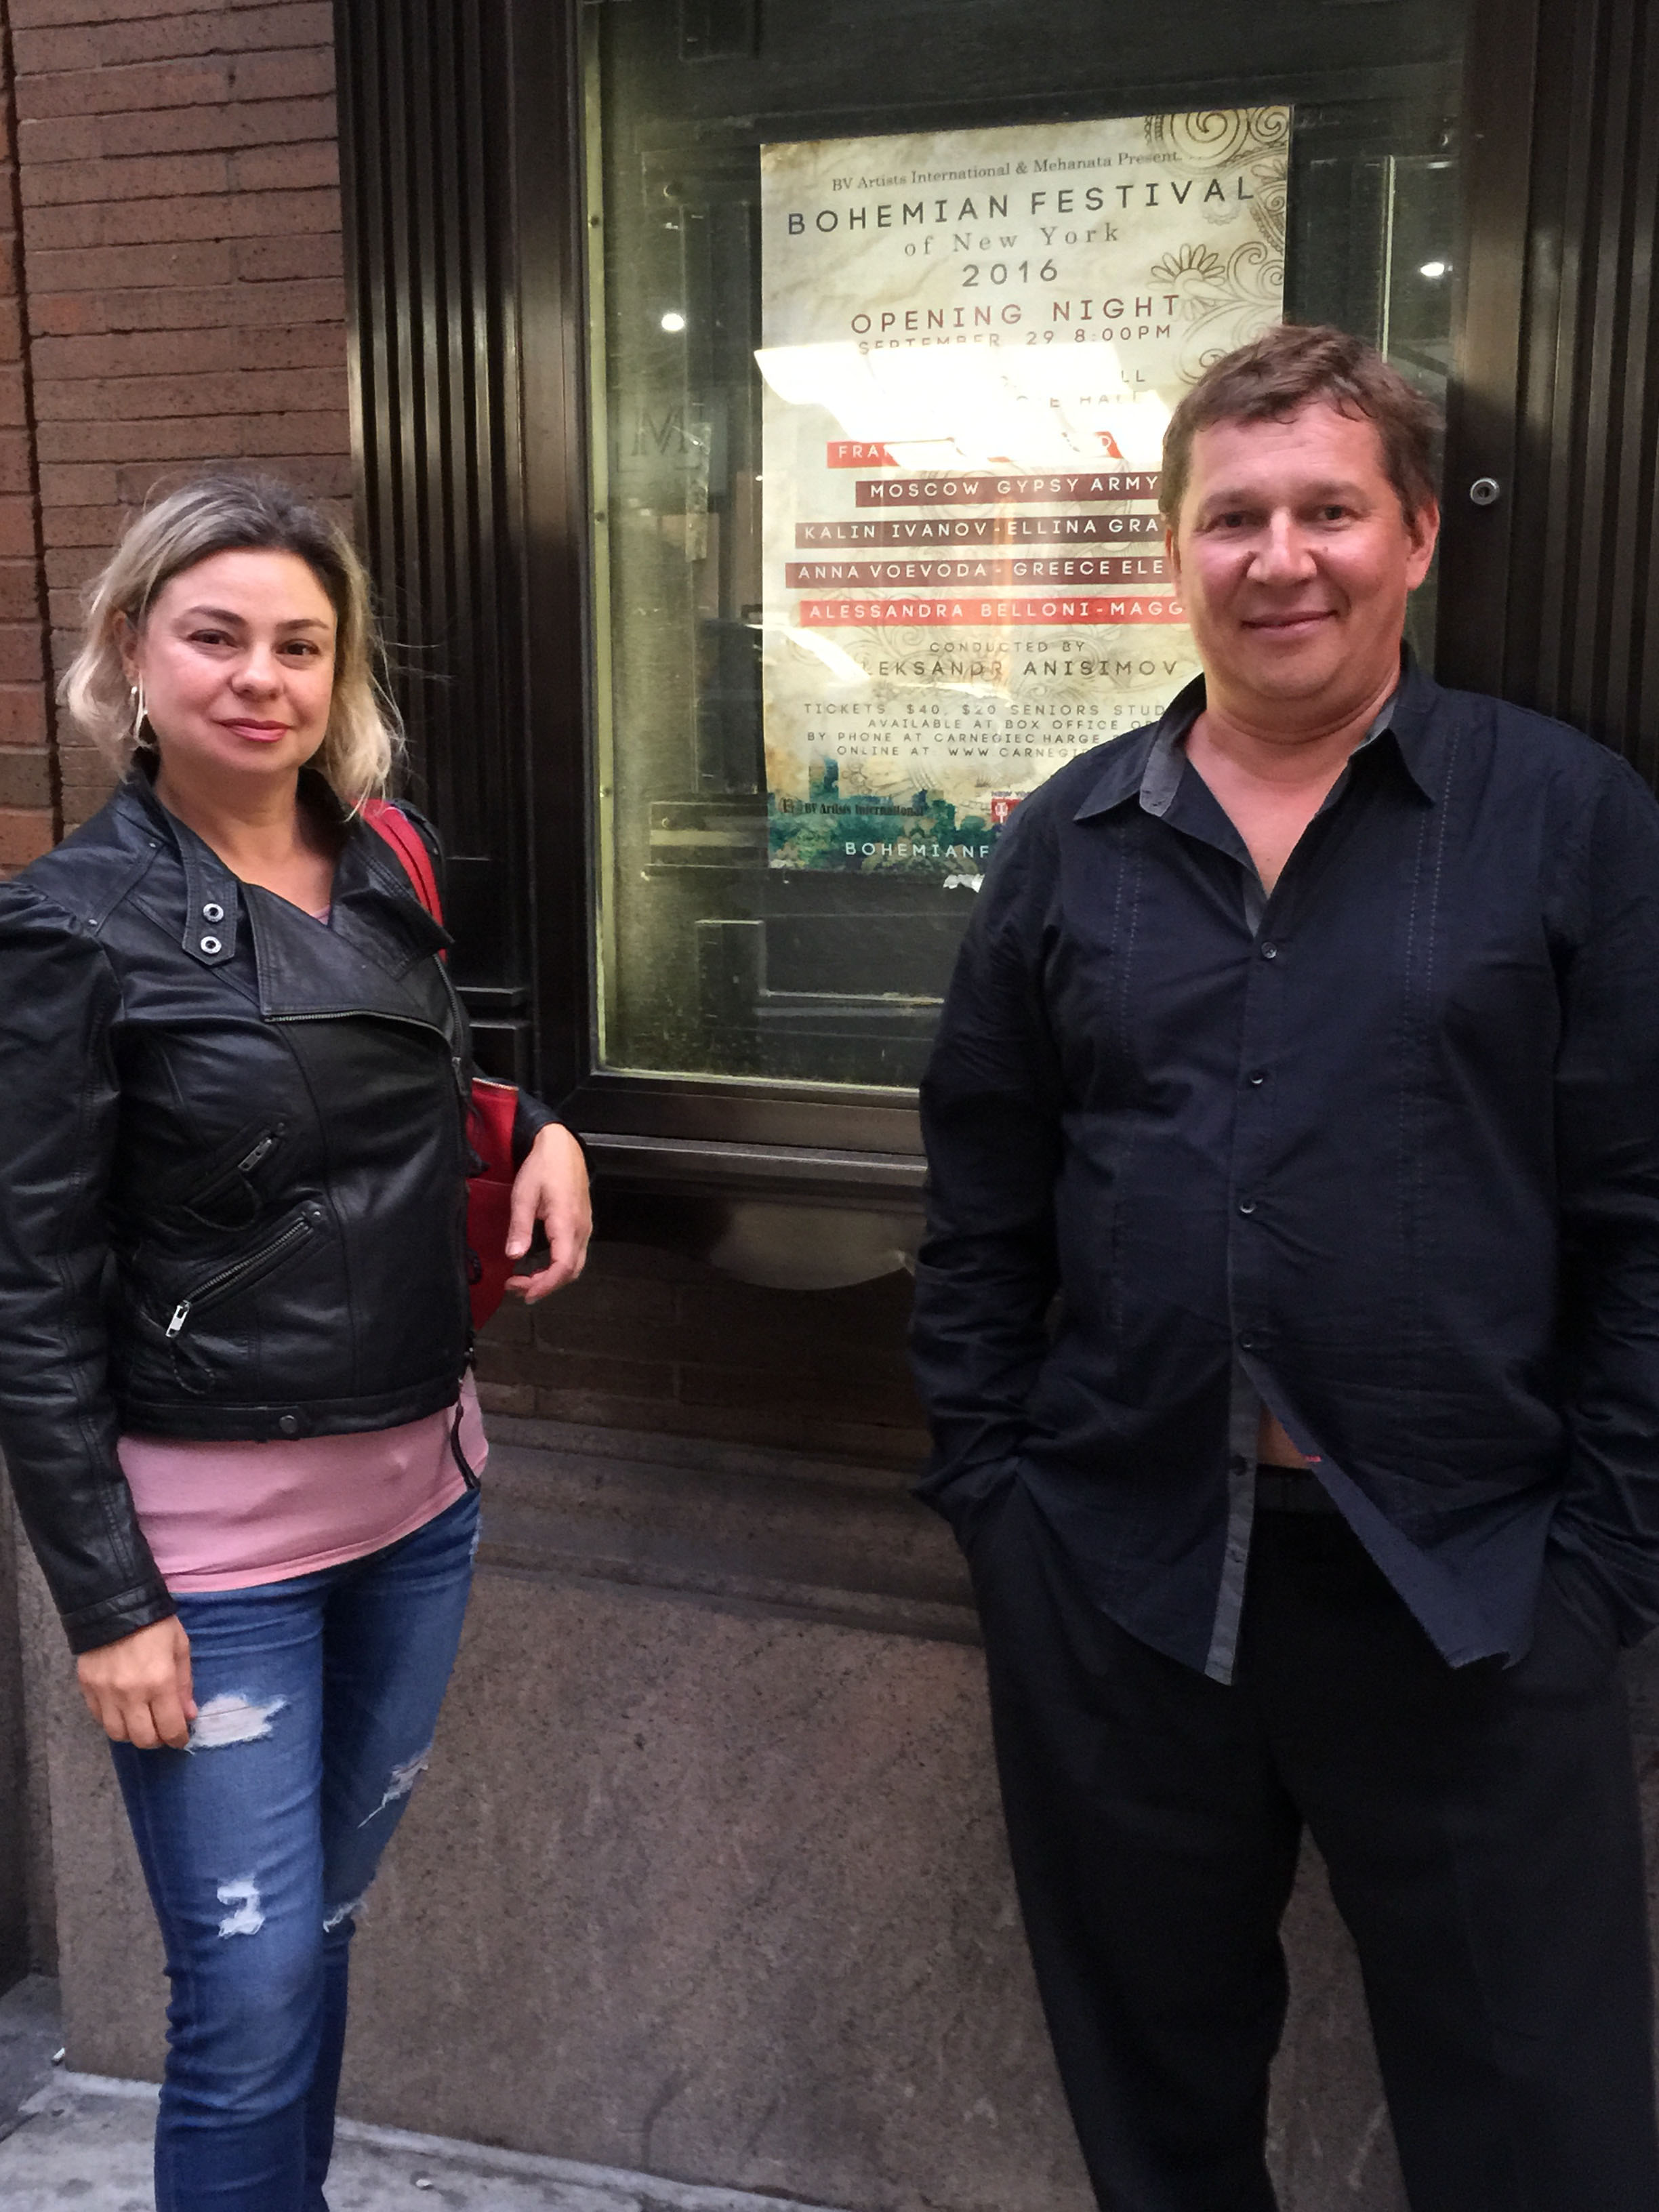 Elina Karokhina and Mikhail Smirnov before the concert at the Carnegie Hall in New York City